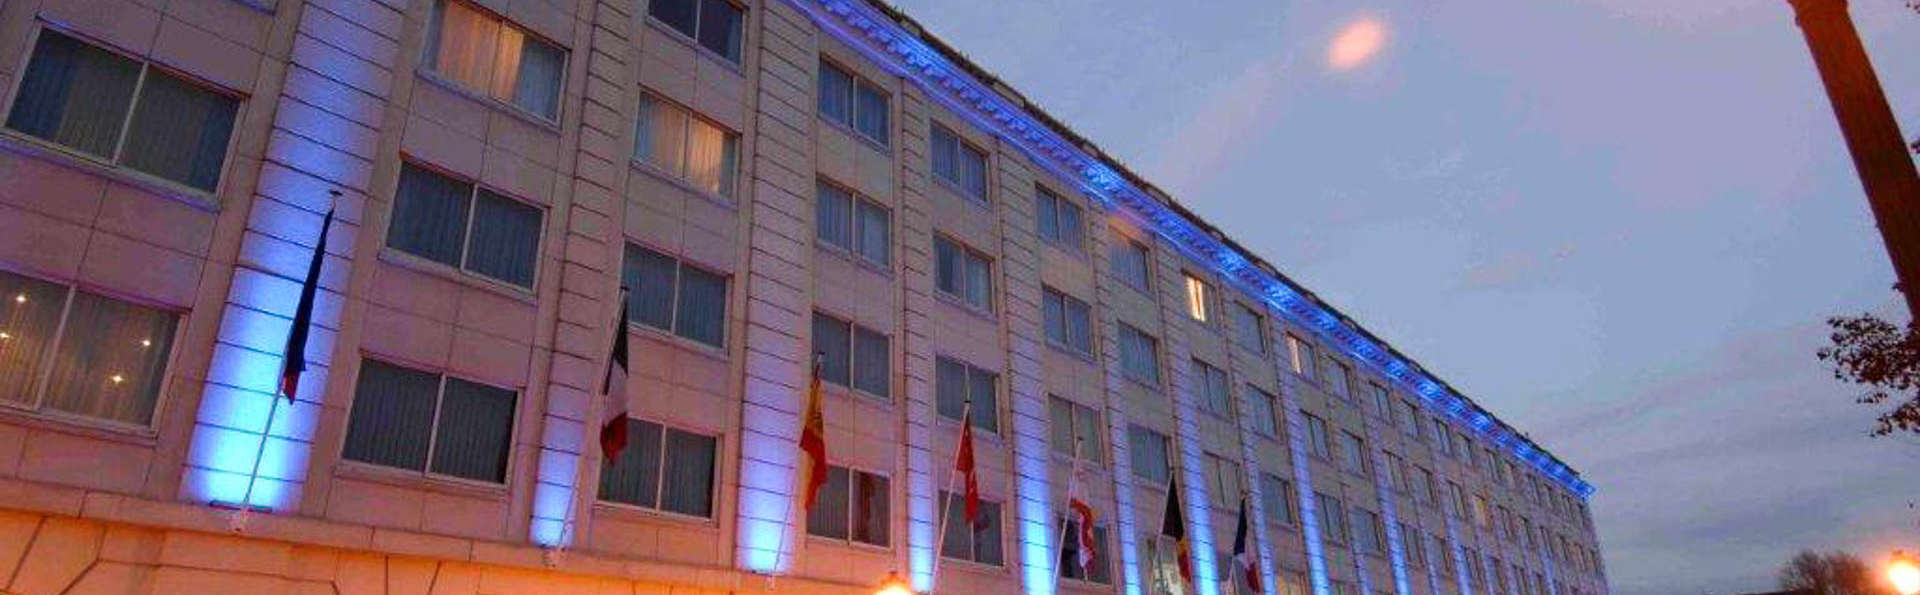 The President - Brussels Hotel  - EDIT_FRONT2.jpg